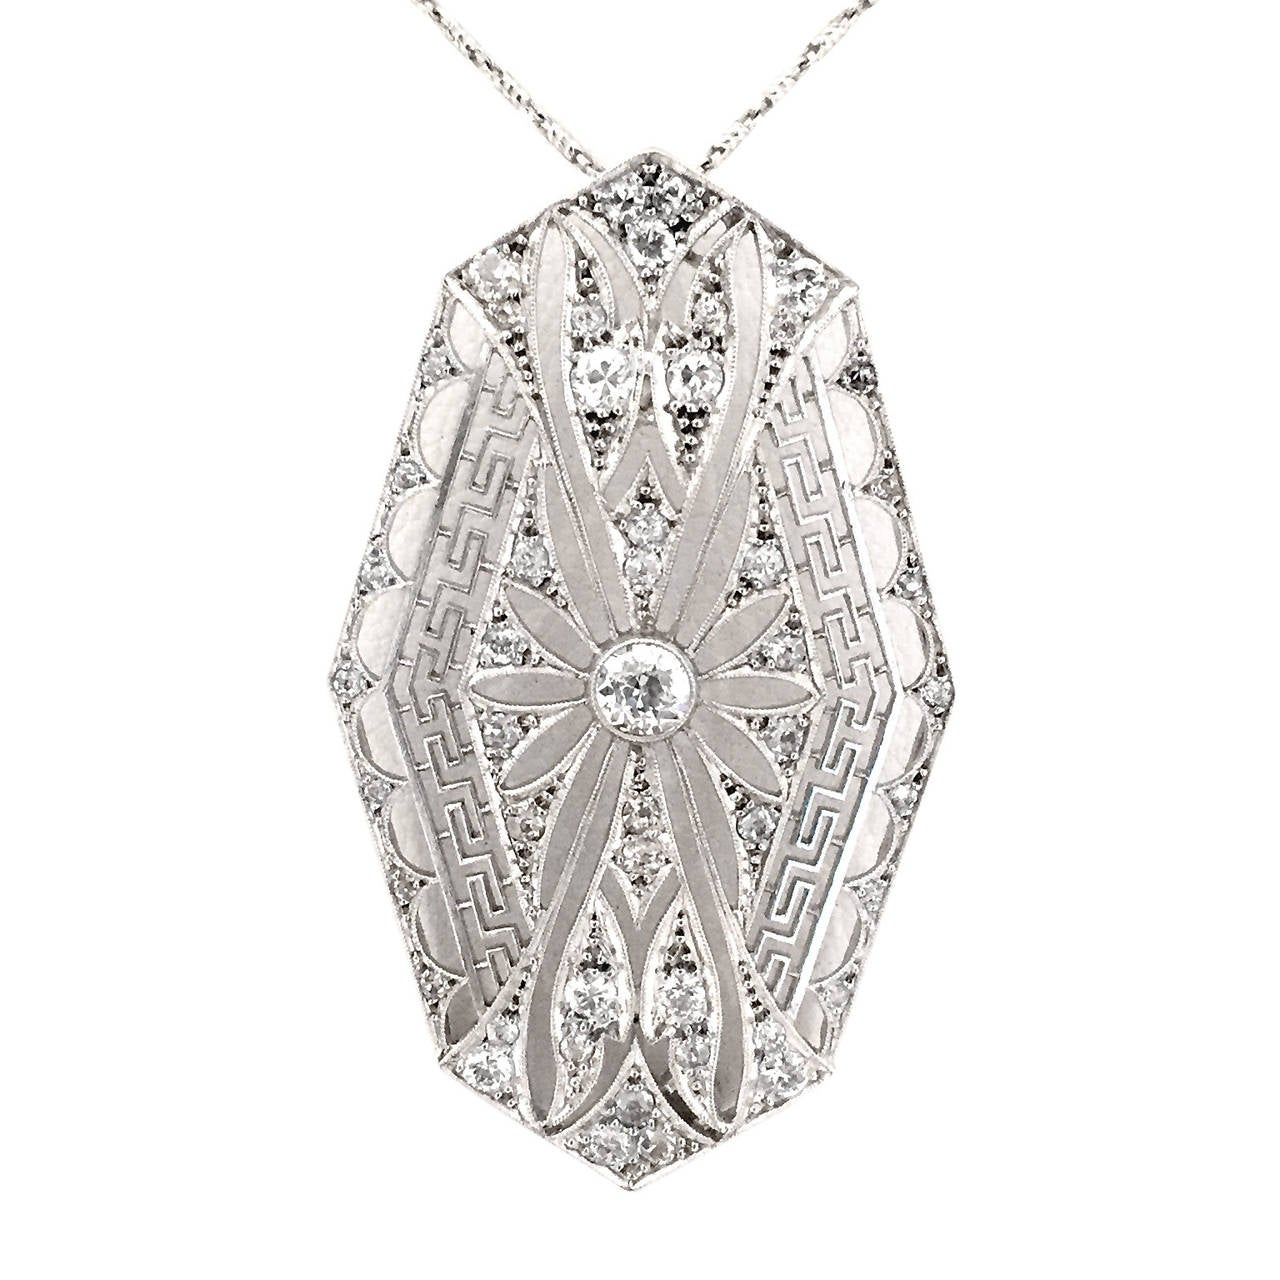 This original N-0025platinum Art Deco diamond pendant features a delicate and airy open-work design, including a dramatic Greek-key and floral filigree motif, all surrounding a one-carat diamond. 1-3/4 long, 1 inch wide. 16-inch 14k gold chain